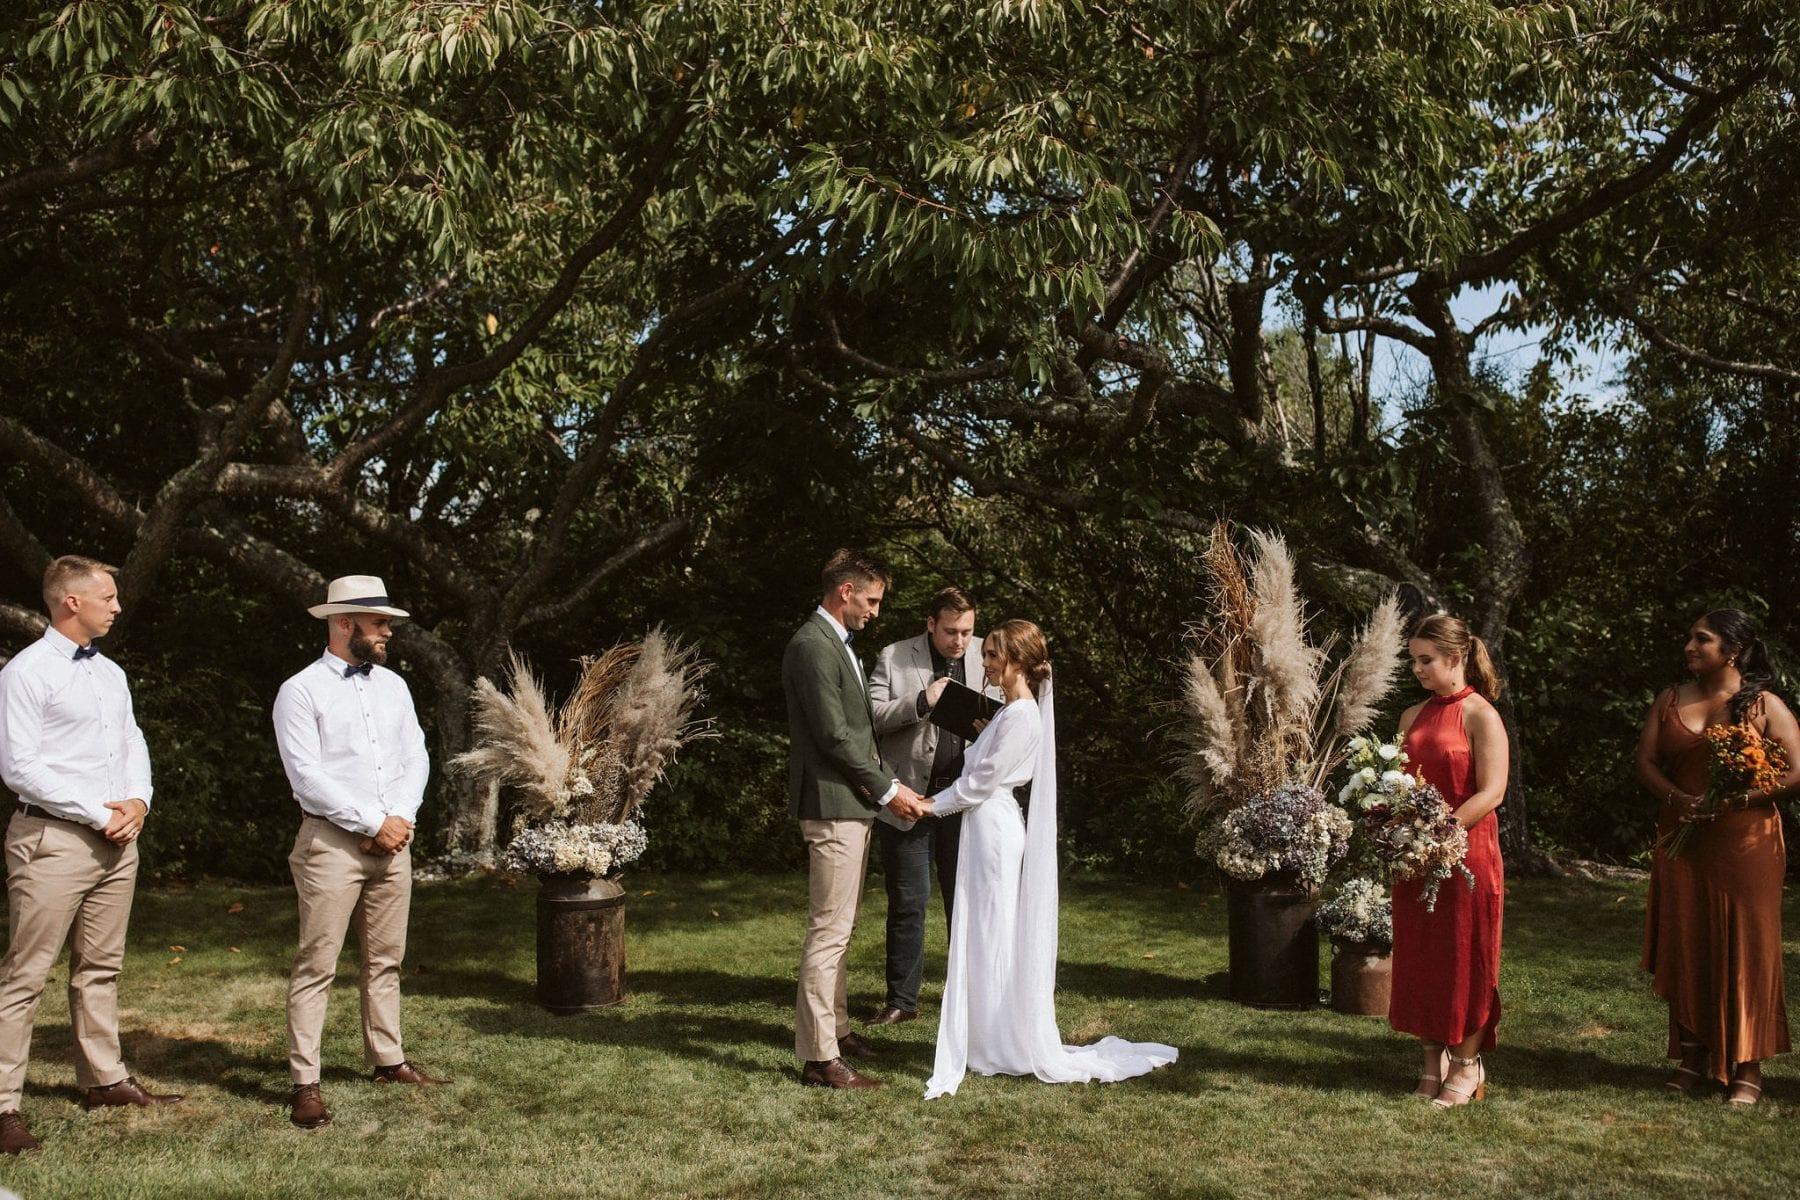 Sarah + Jeremy \\ Taupo Wedding captured by Ana Galloway. Hayes Bridal, Meadowlark. Modern Bride. New Zealand. Dried Flowers ceremony.